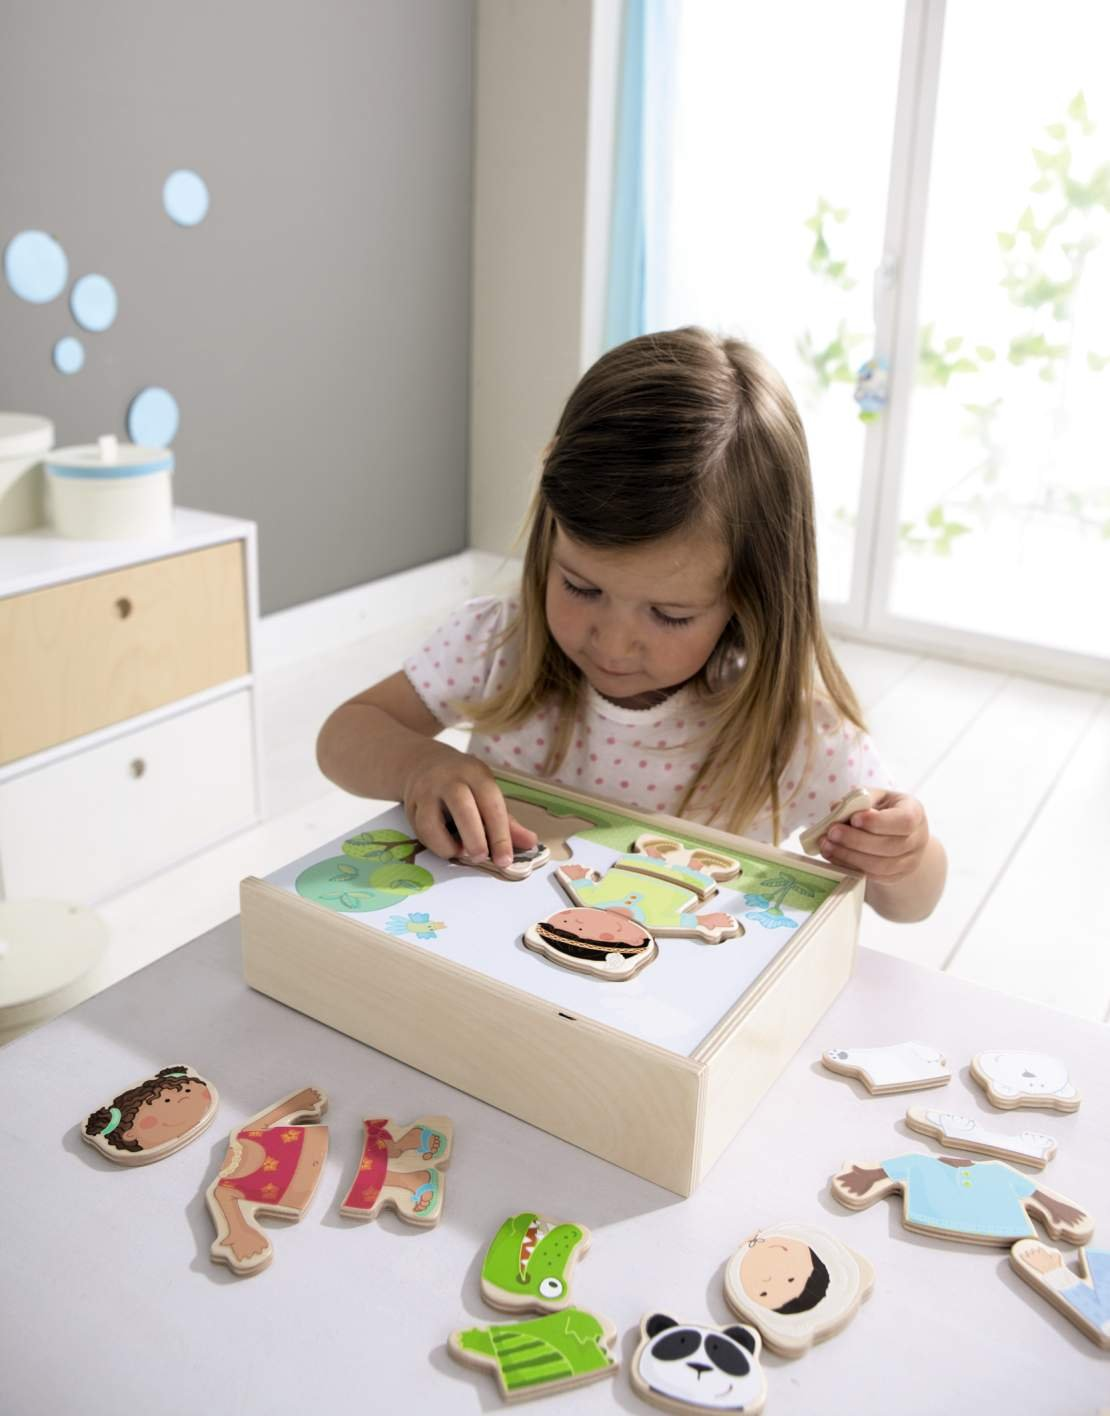 HABA Children of the World - 36 Piece Mix and Match Multi-Cultural Puzzle with Wooden Storage Box by HABA (Image #4)